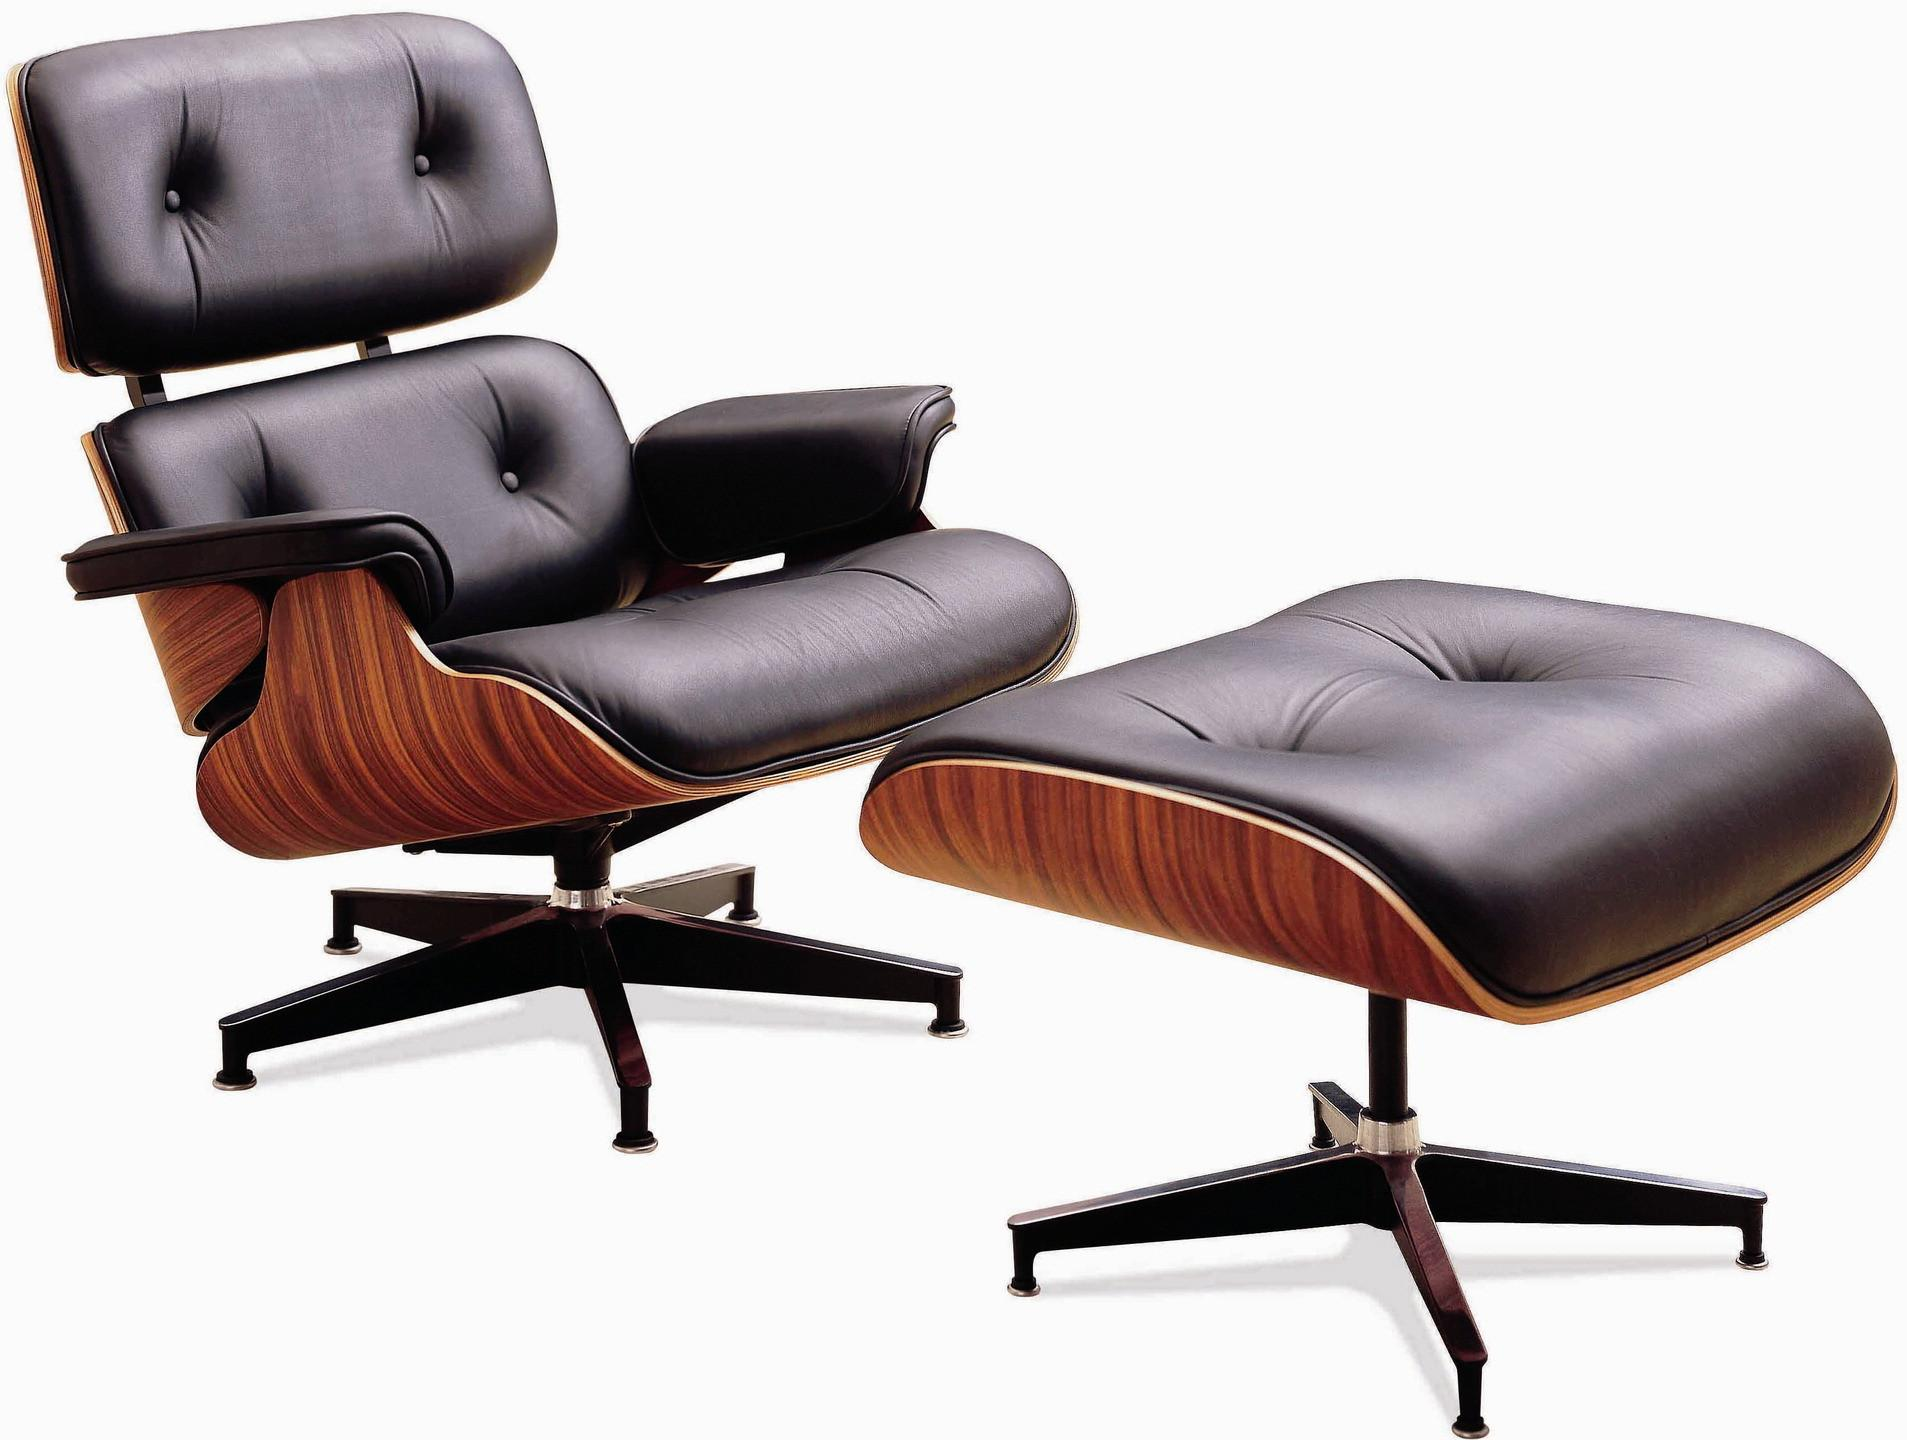 Eames Lounge Chair Model Models